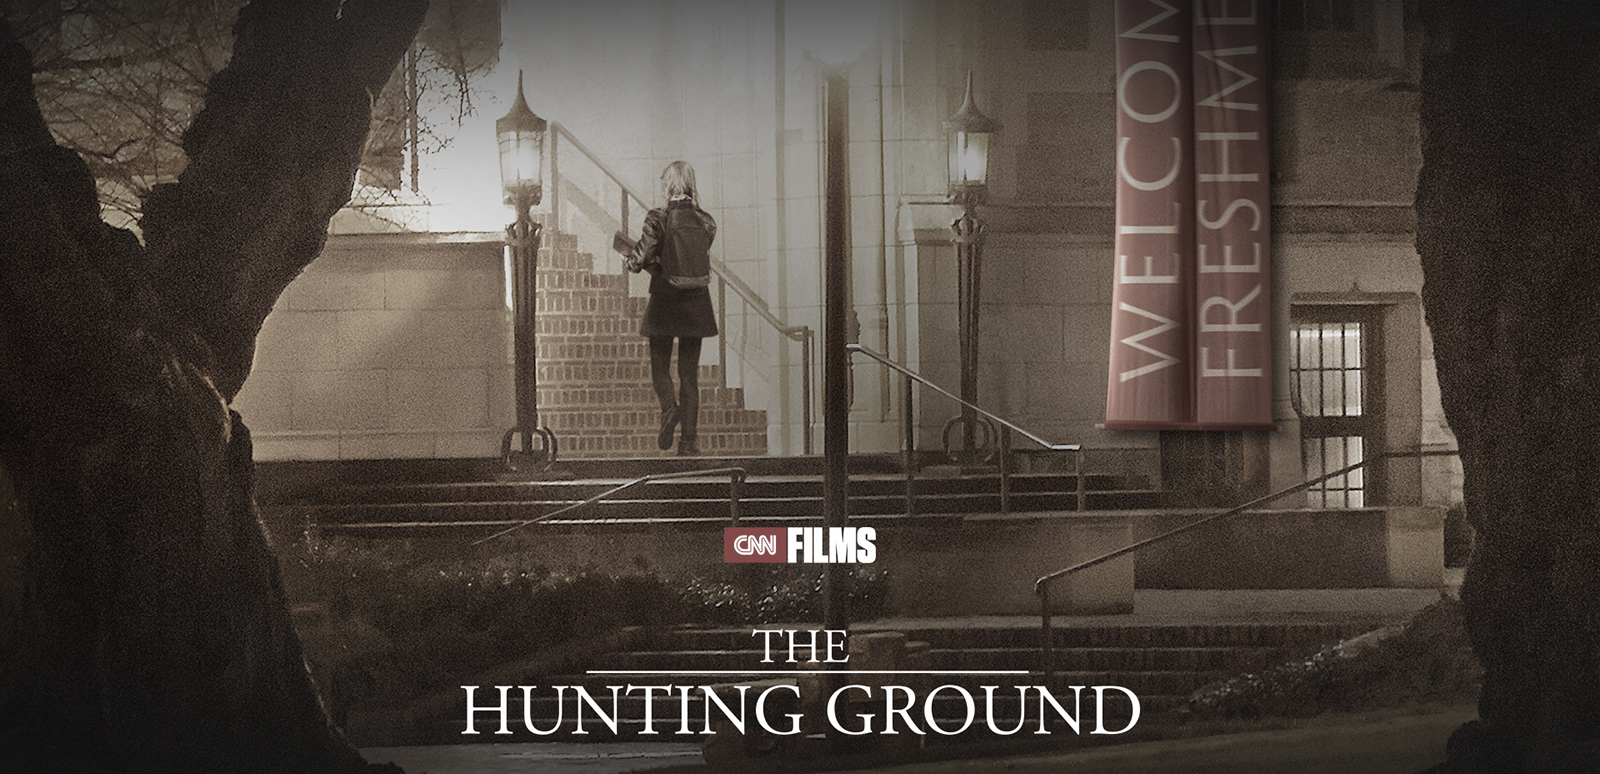 CNN Films: The Hunting Ground